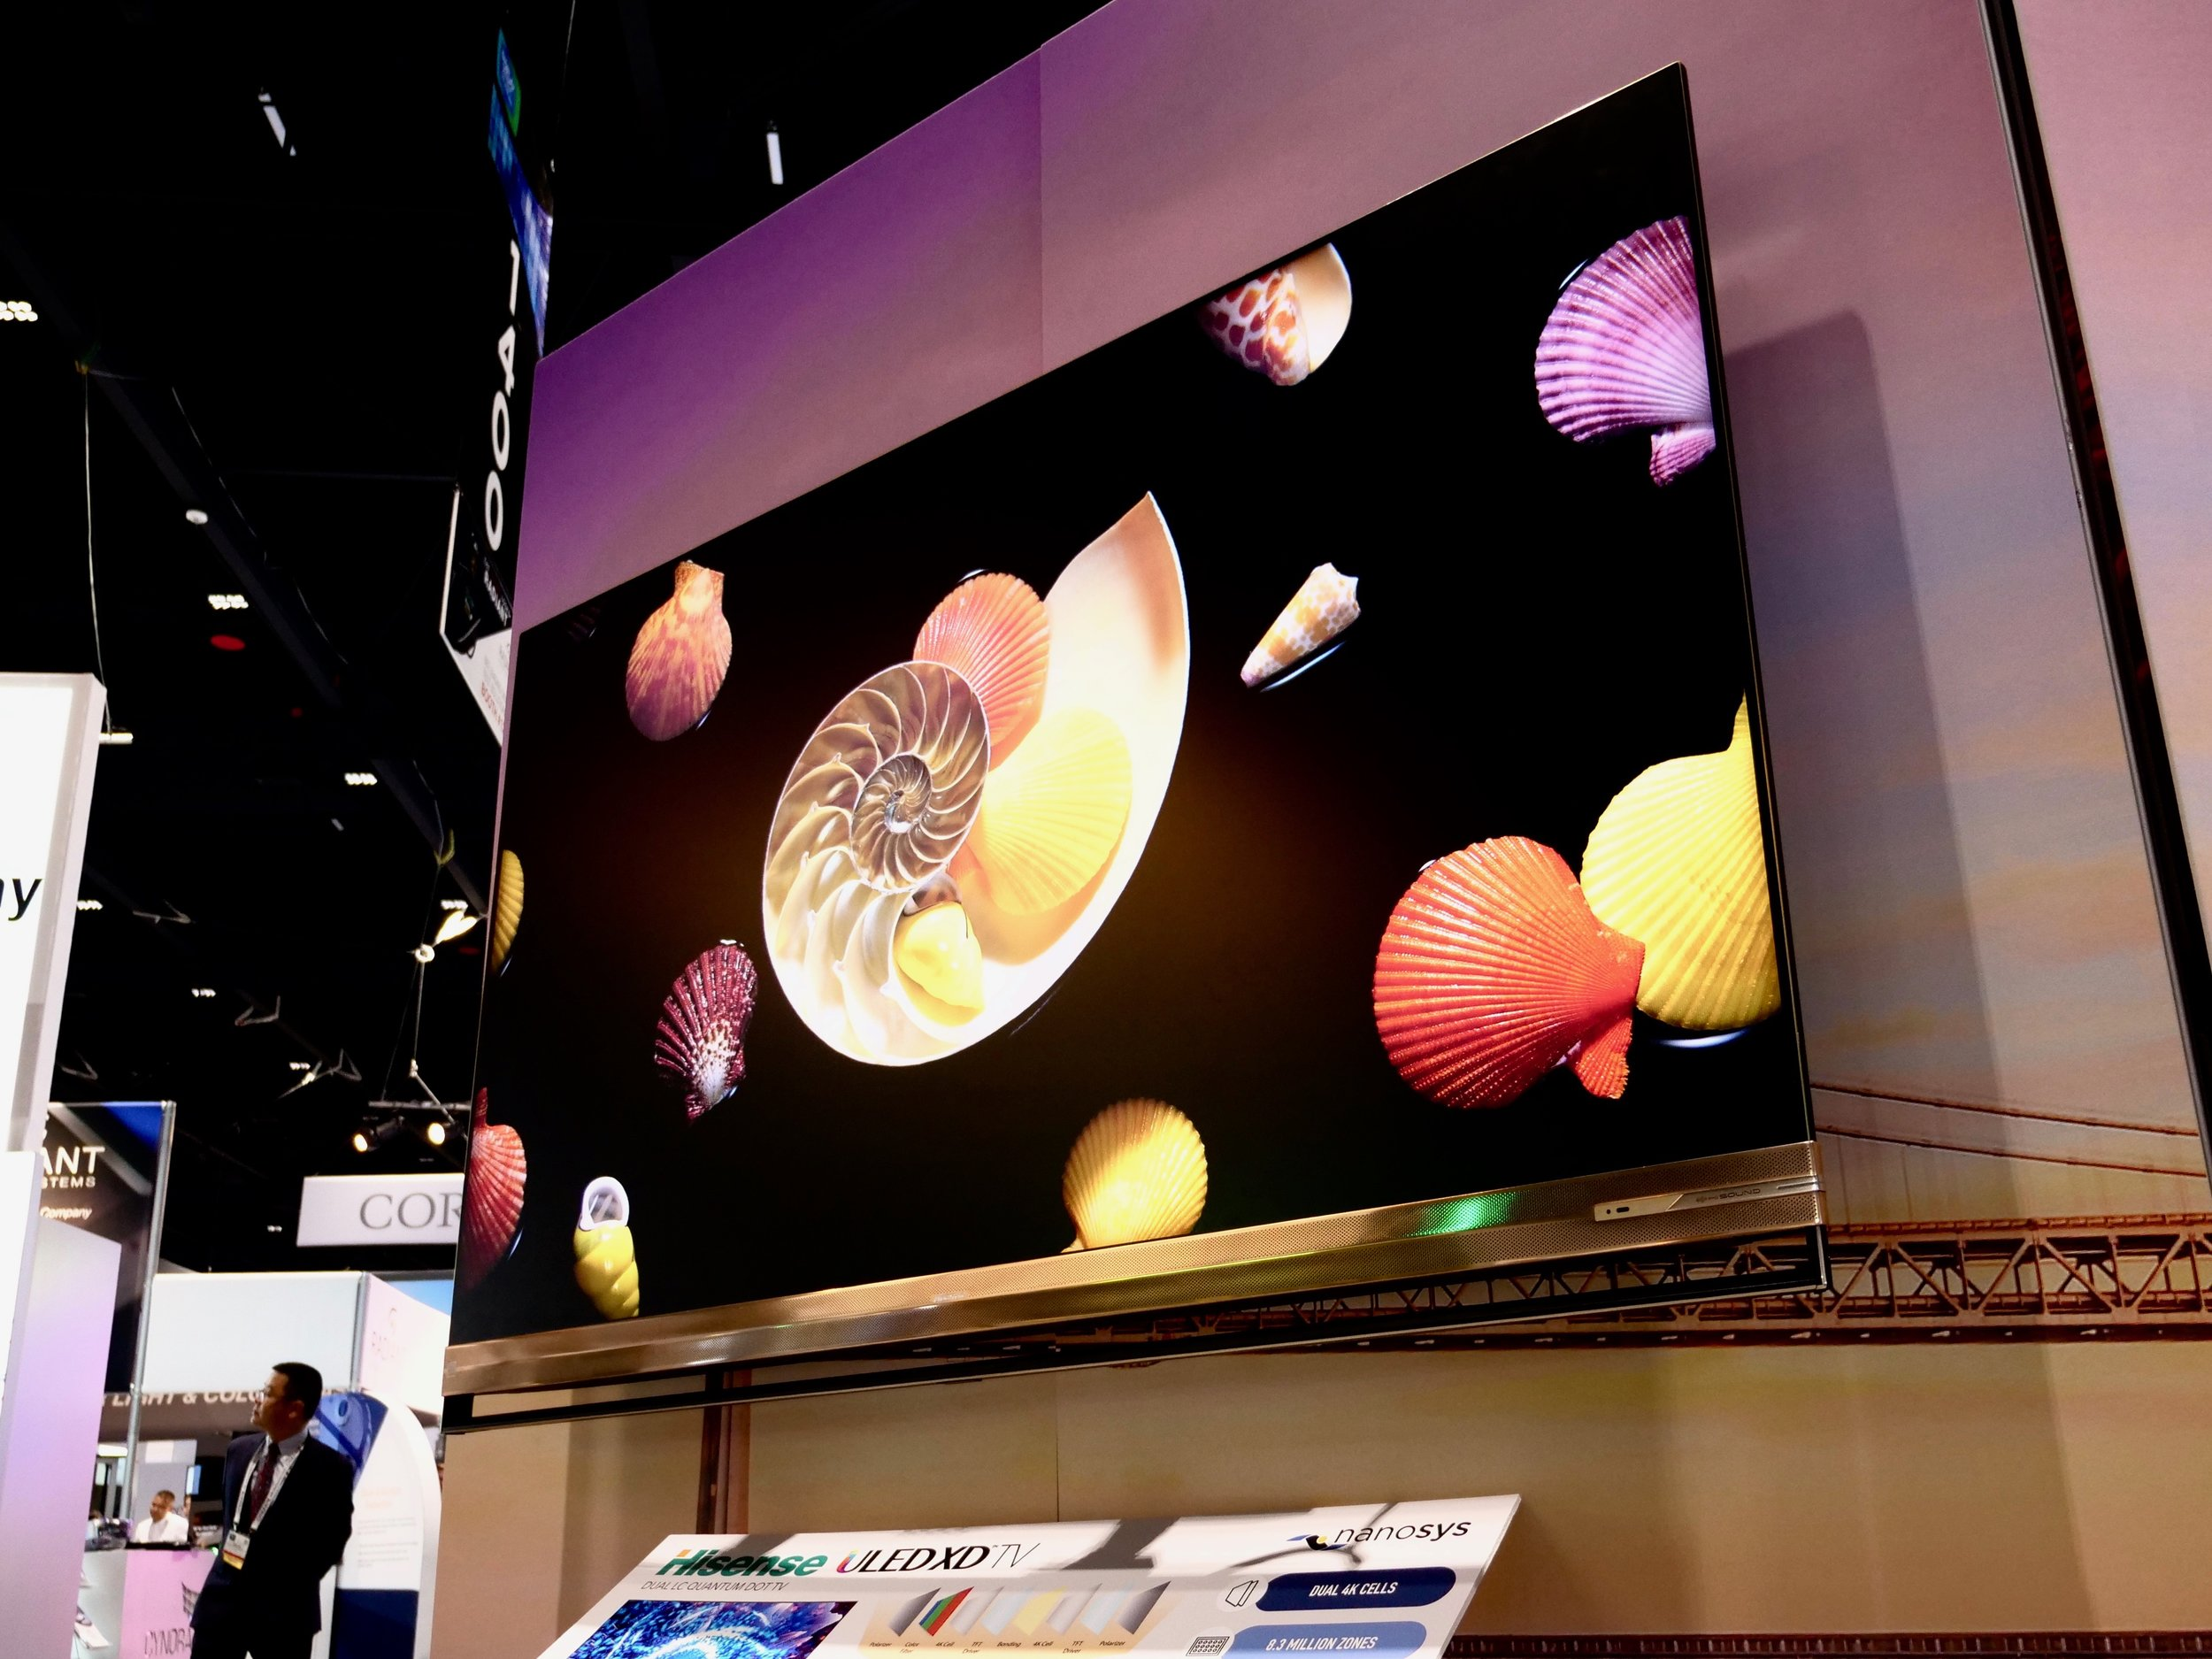 Nanosys showed this Hisense ULED XD dual‐cell LCD prototype that uses two LC panels to increase contrast and quantum dots for brilliant color and luminance.